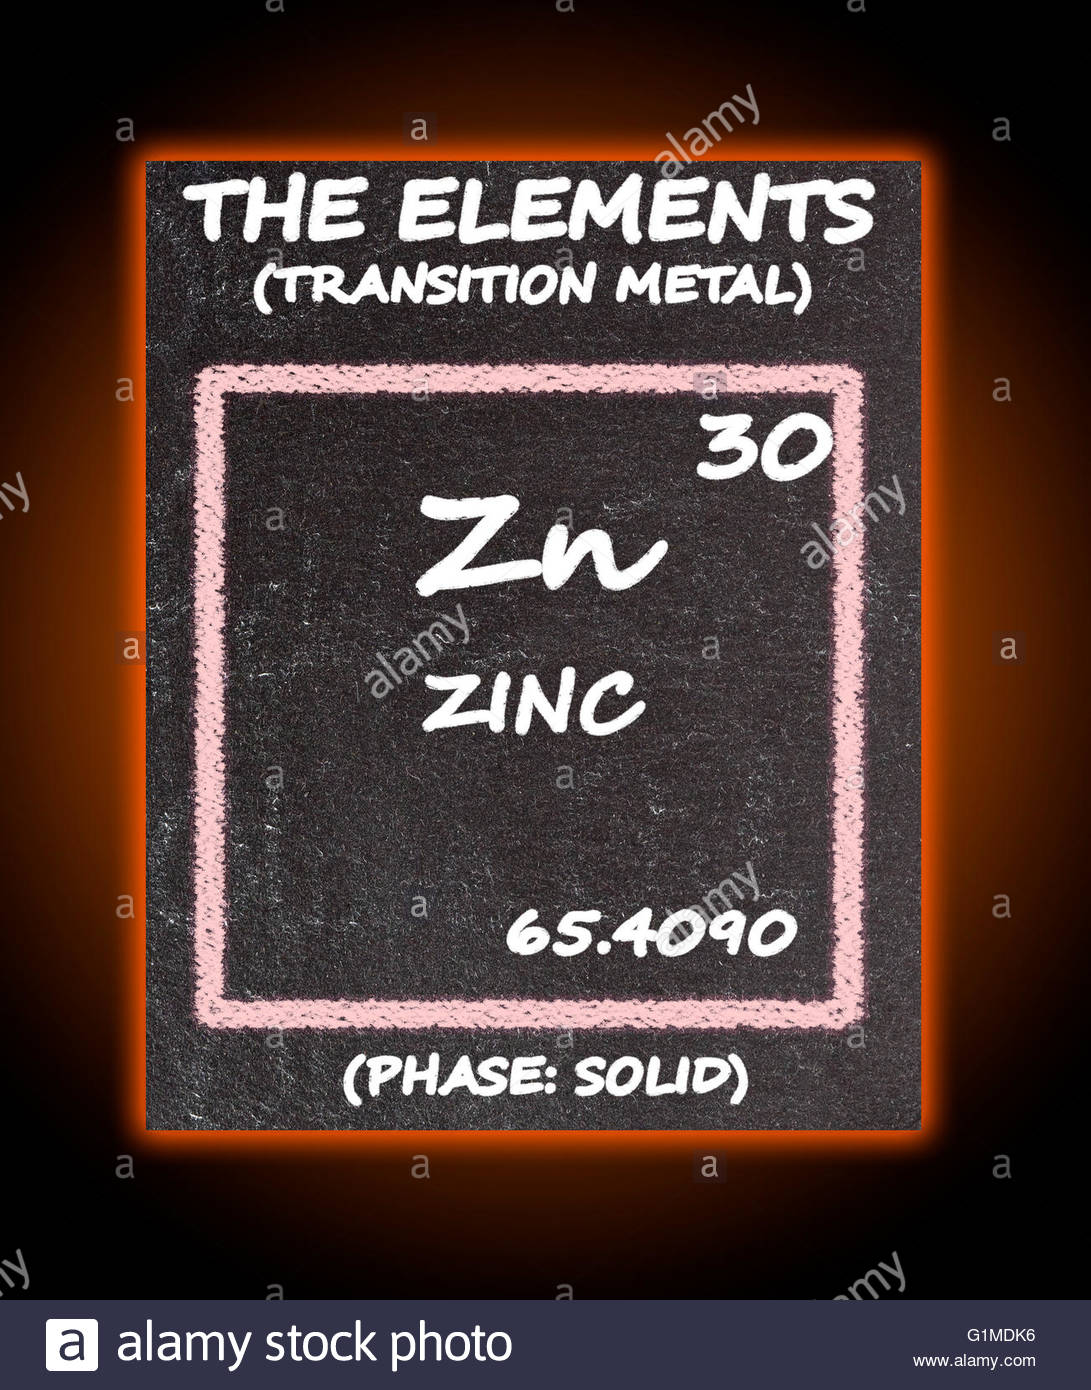 Zinc details from the periodic table stock photo royalty free stock photo zinc details from the periodic table gamestrikefo Image collections